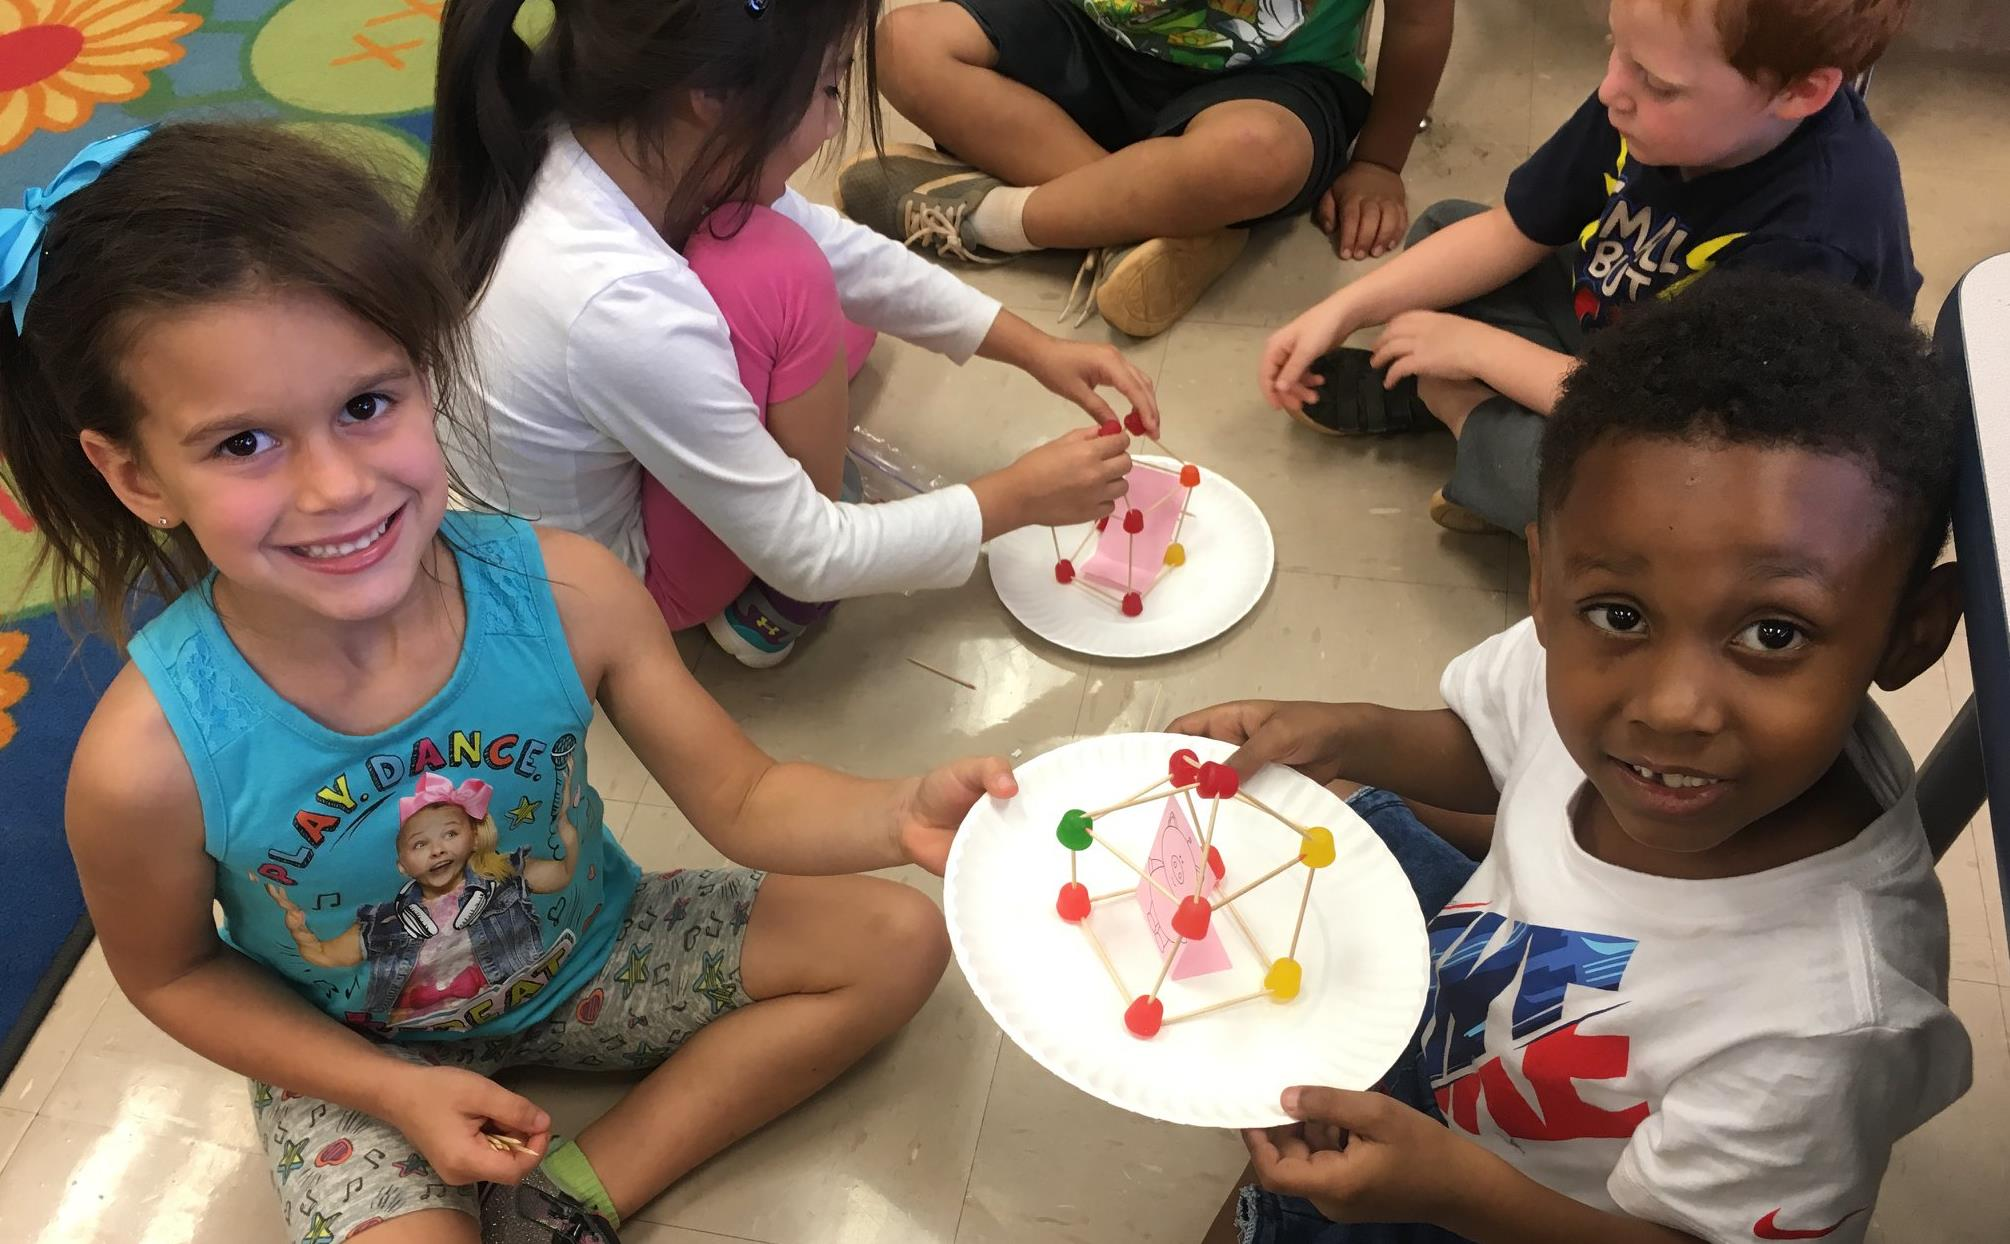 kindergarten students making models with gumdrops